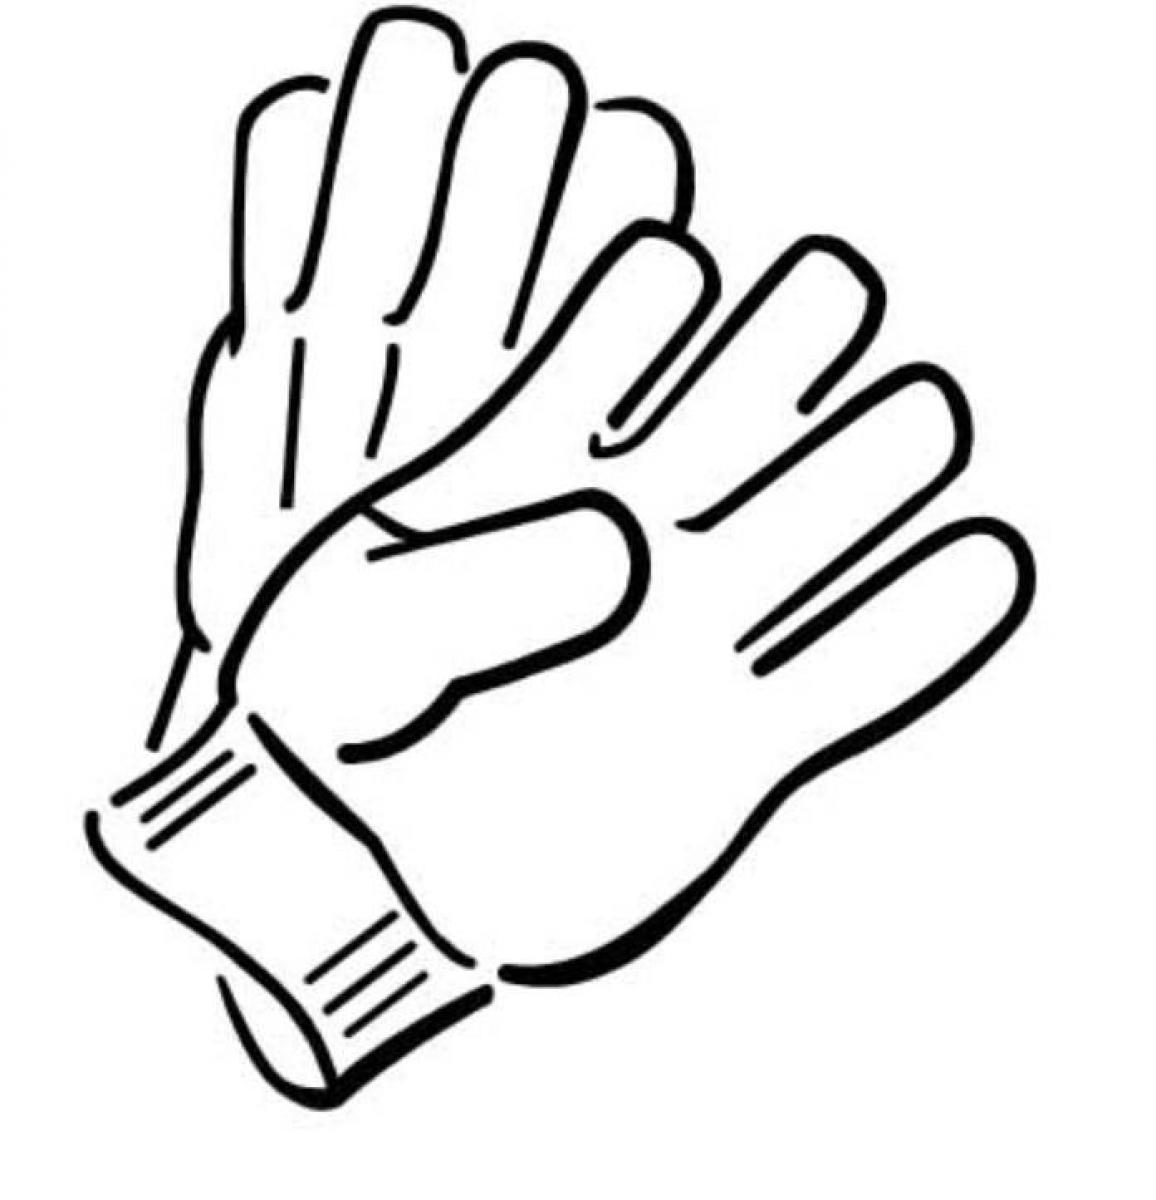 Gloves Coloring Pages - ClipArt Best